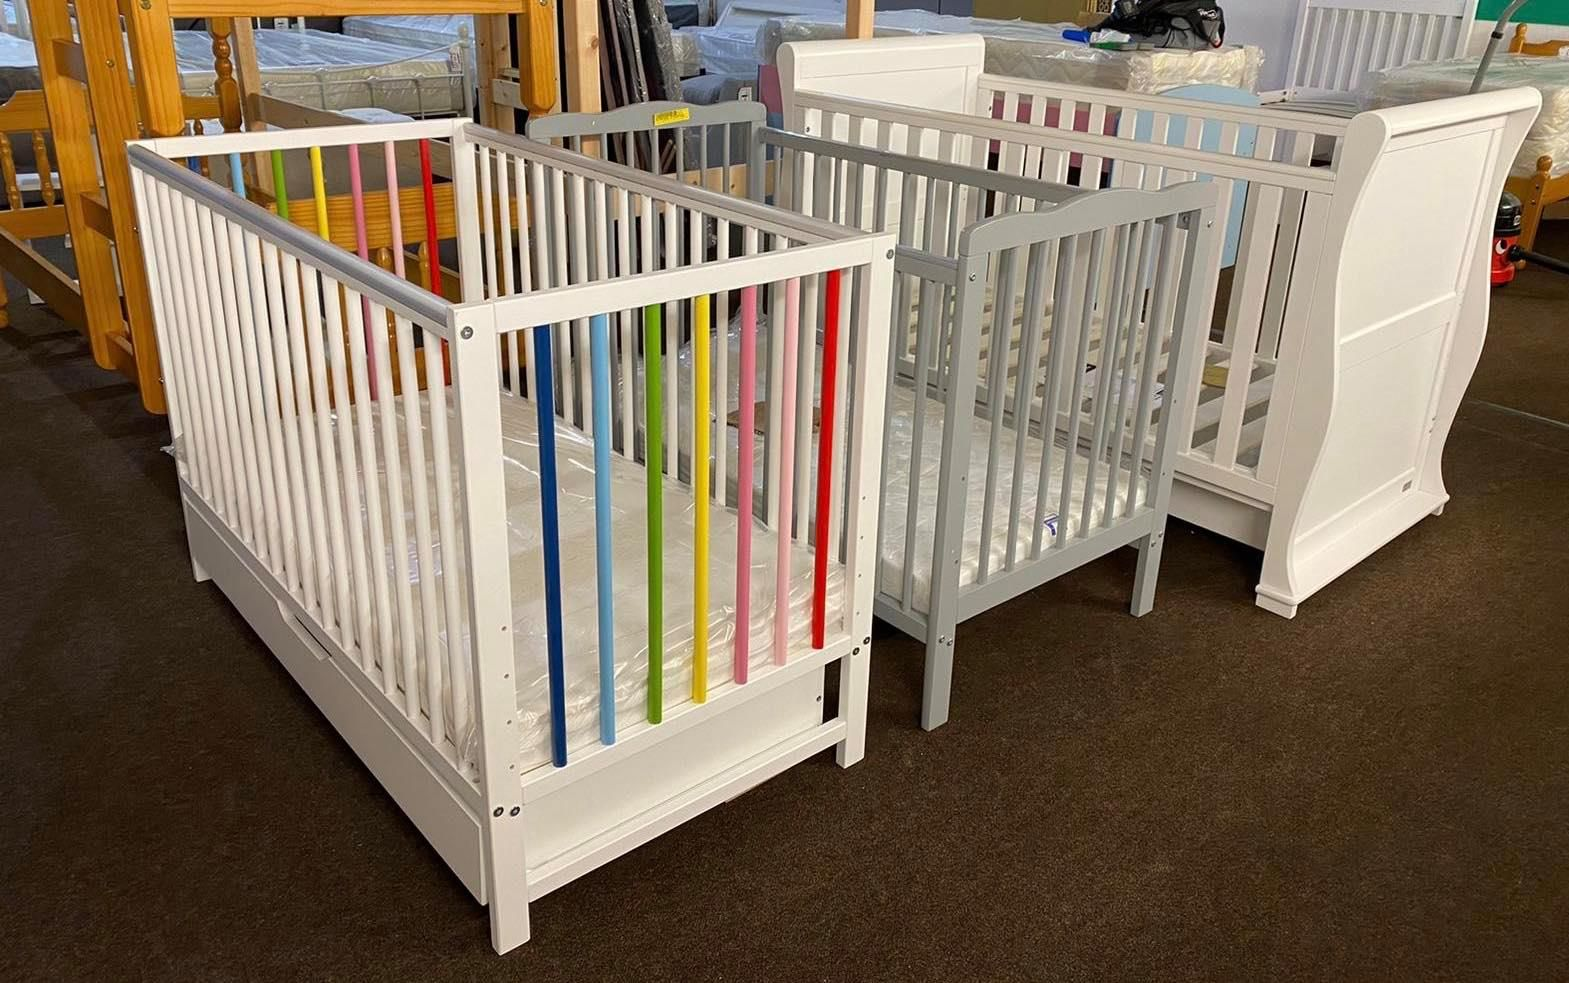 Wickford Store 4 8 Russell Gardens Essex Ss11 8qu Tel 01268 573433 Furnitureoutletstores Cot - Garden Furniture Clearance Wickford